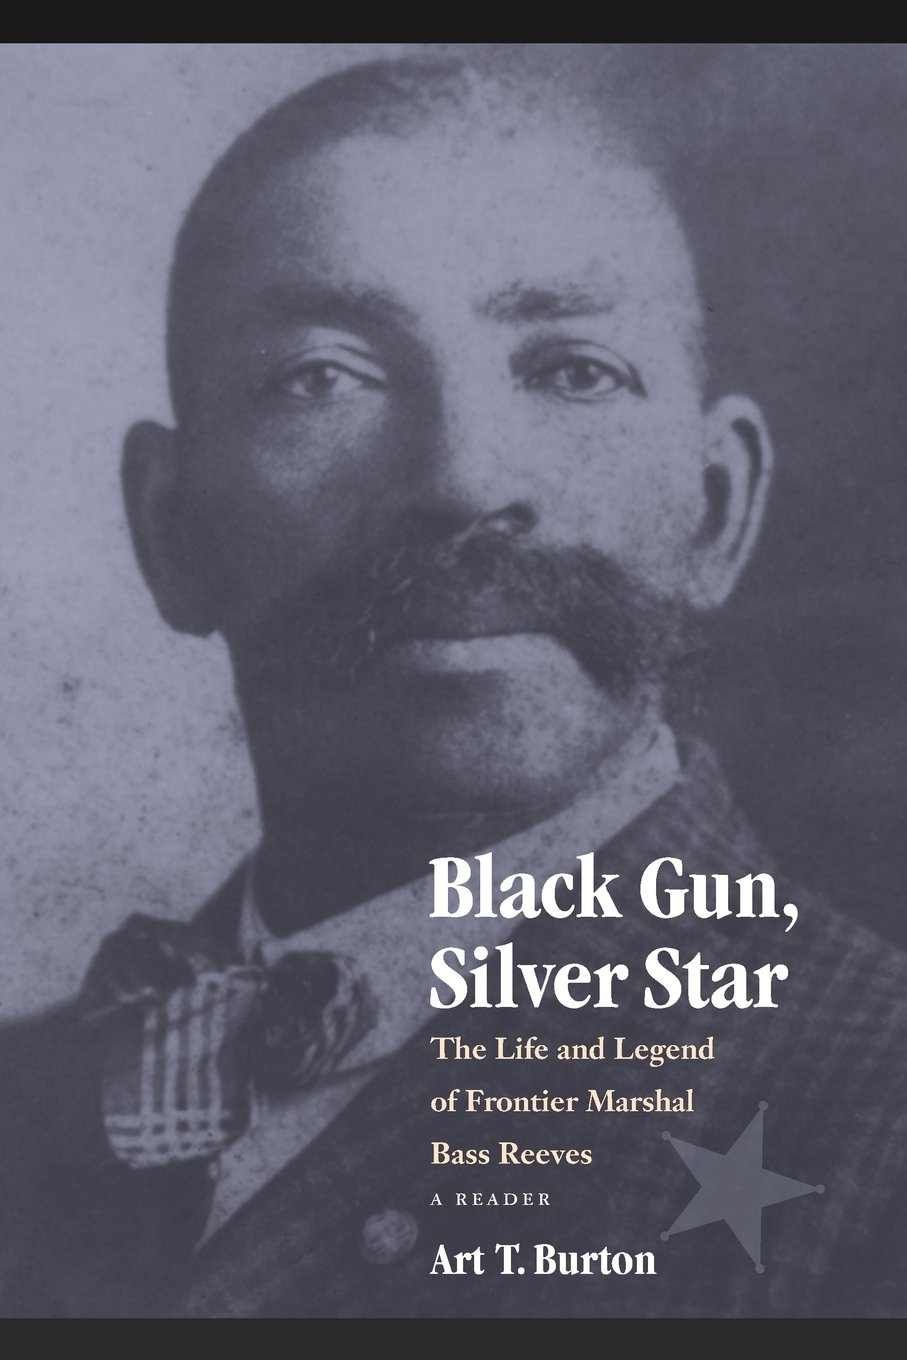 black-gun-silver-star-the-life-and-legend-of-frontier-marshal-bass-reeves-race-and-ethnicity-in-the-american-west